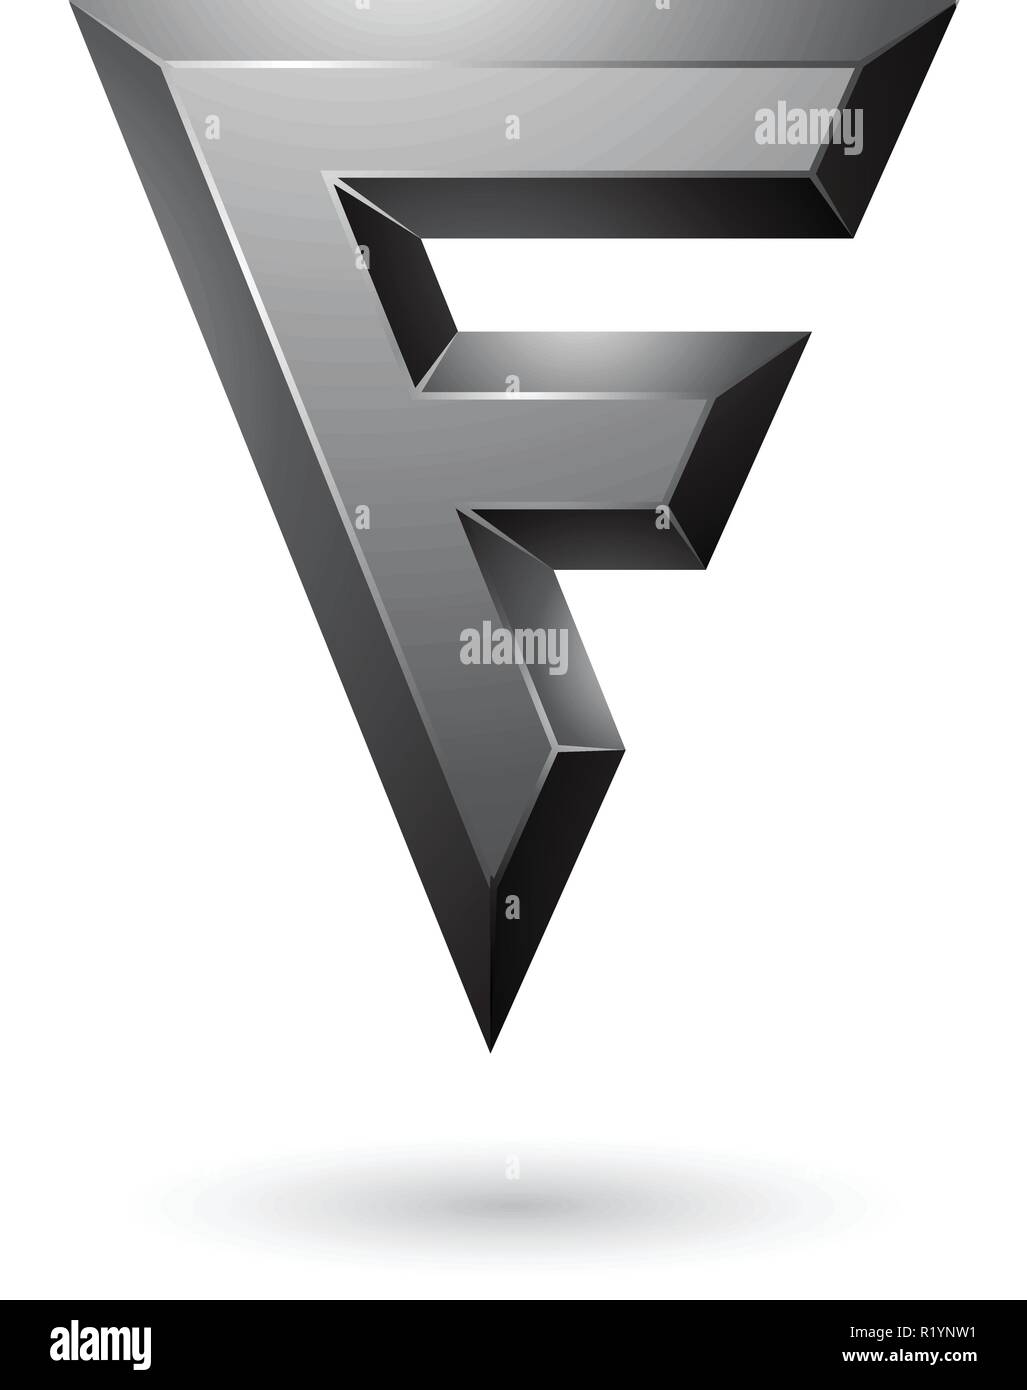 Vector Illustration Of Black Glossy Geometrical Letter F Isolated On